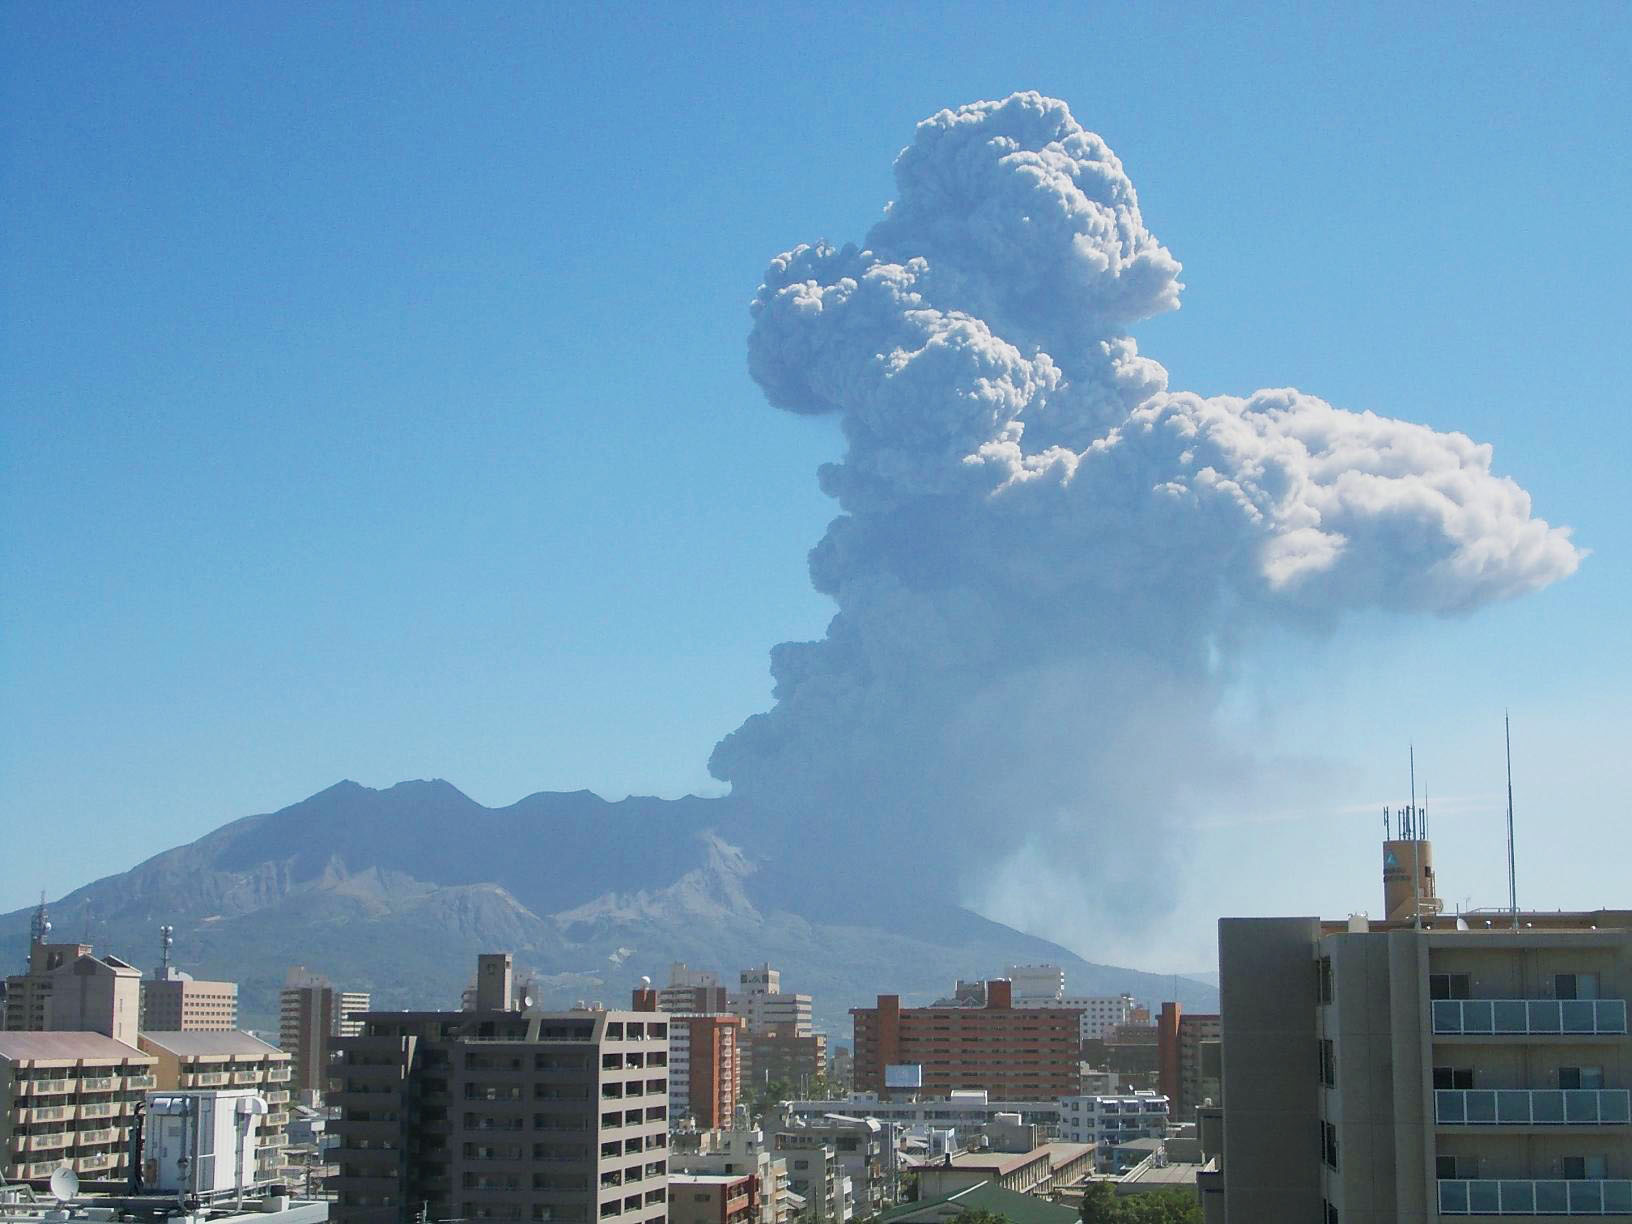 Explosive: Volcanic gas carrying sulfur dioxide is released from Mount Sakurajima in Kagoshima Prefecture during an eruption Sept. 26. The gas is partly responsible for spikes in the air pollutant PM2.5 in the Kanto and Tokai regions, the Meteorological Research Institute says | KAGOSHIMA METEOROLOGICAL OBSERVATORY / KYODO